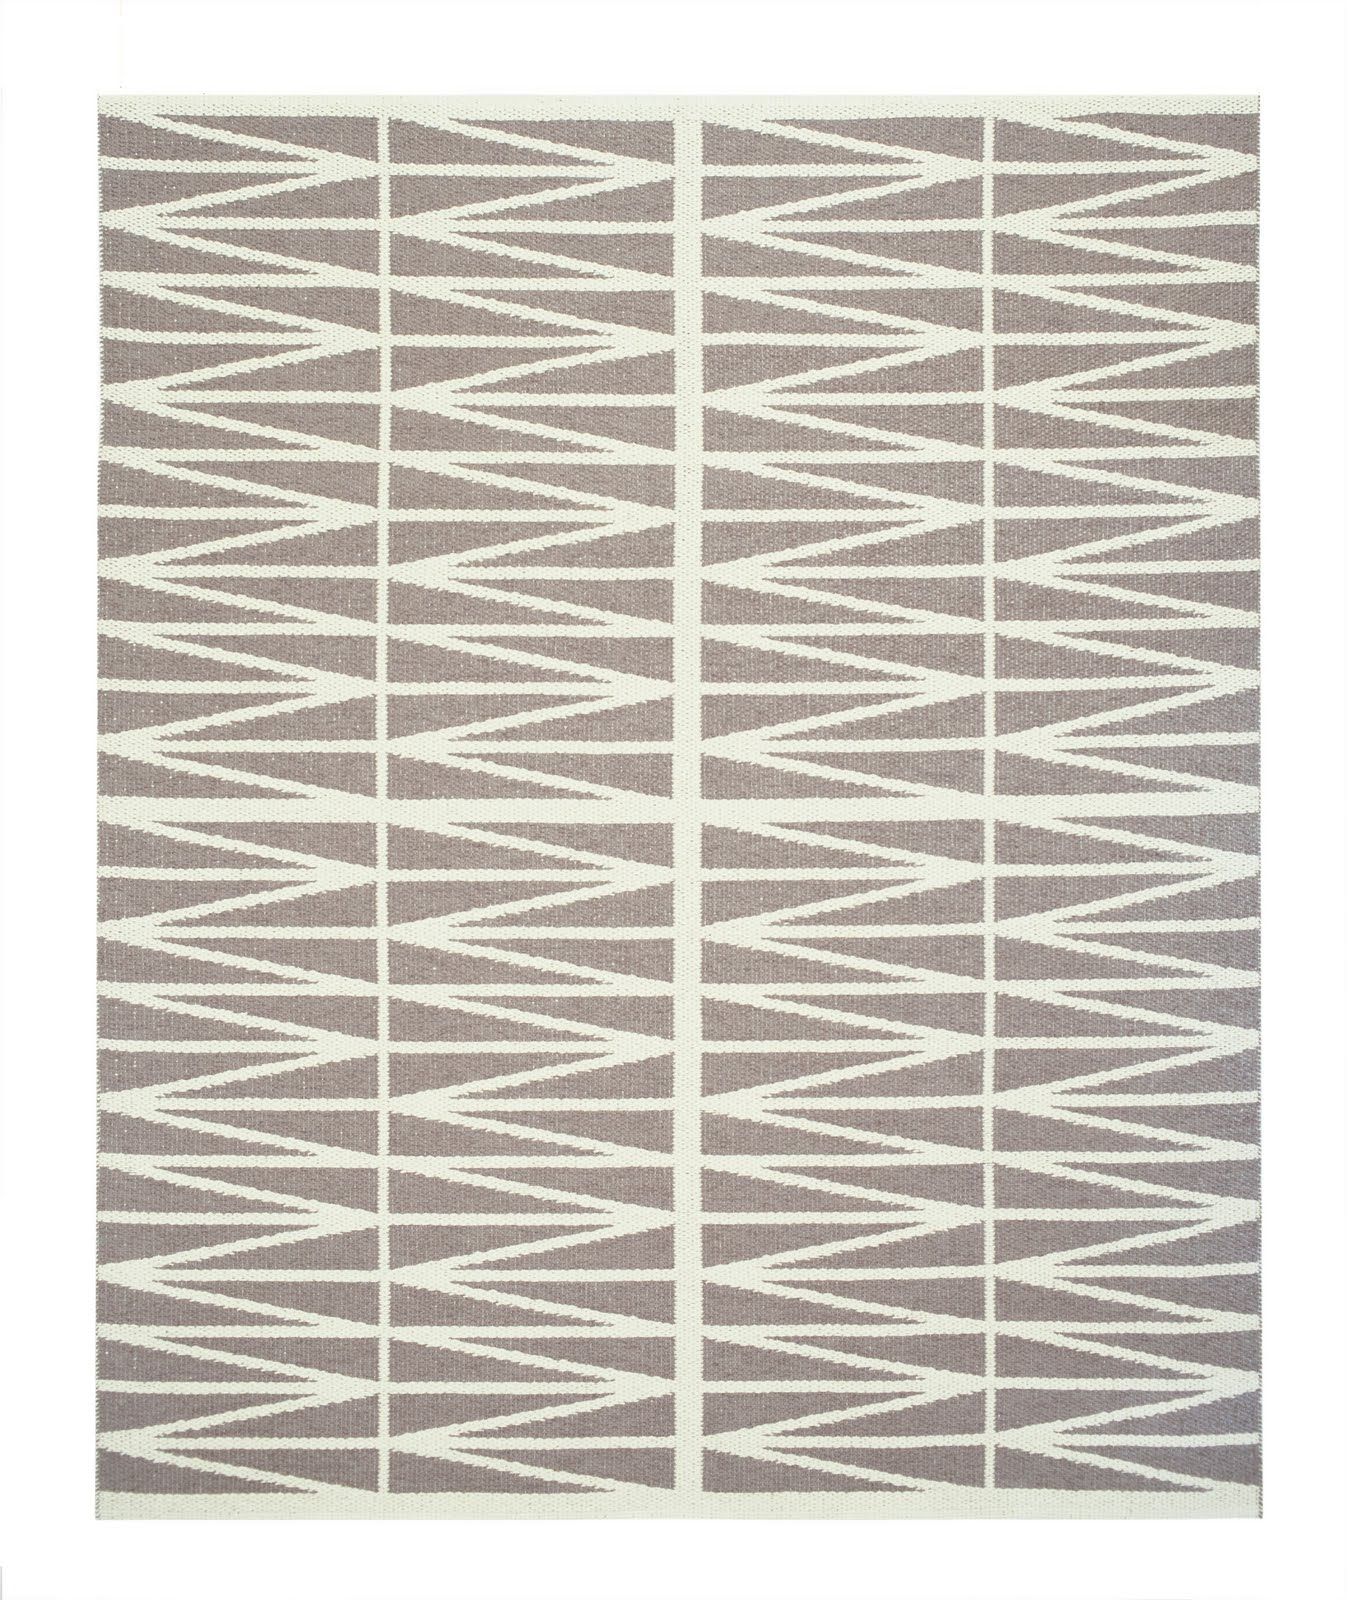 COCOCOZY NEW TO MARKET ZIG ZAG RUG FROM SWEDEN